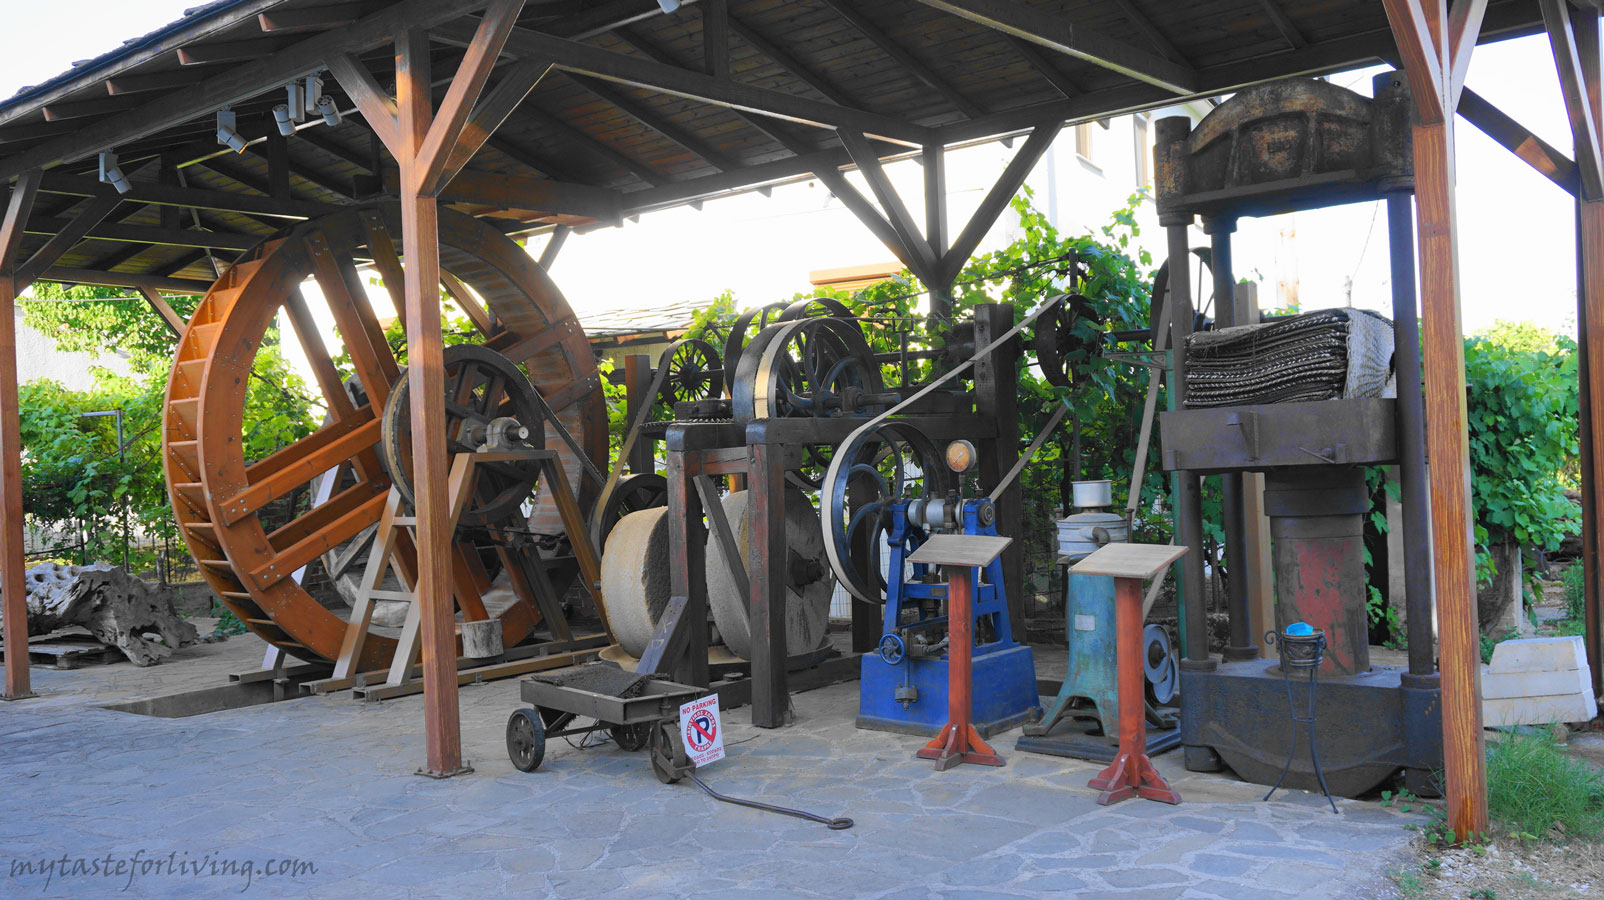 The olive oil museum of the Sotirelis family is a place that we do not miss to visit when we are on the island of Thassos, Greece. It is located in the mountain village of Panagia, a small and pleasant place, suitable for walks.